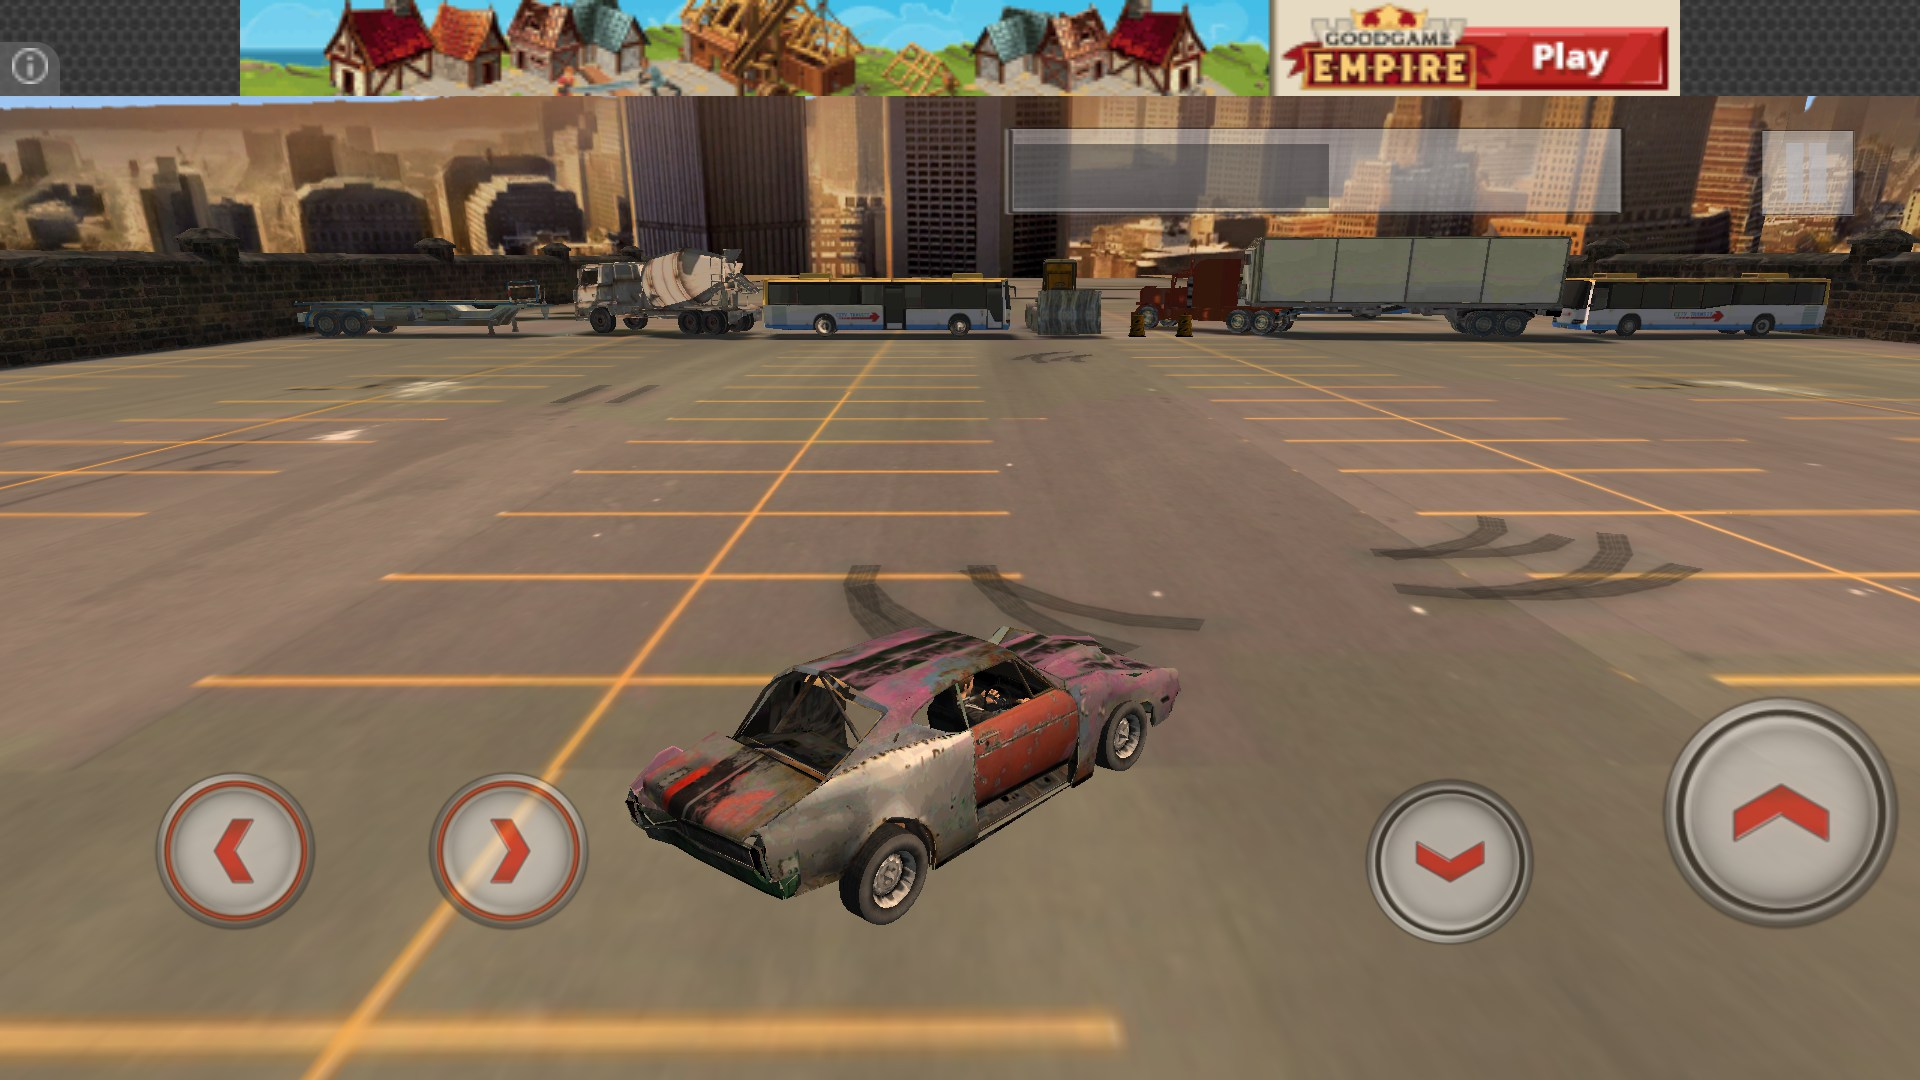 Jet car stunts 2 for samsung gt-s7562 galaxy s duos 2018 – free.